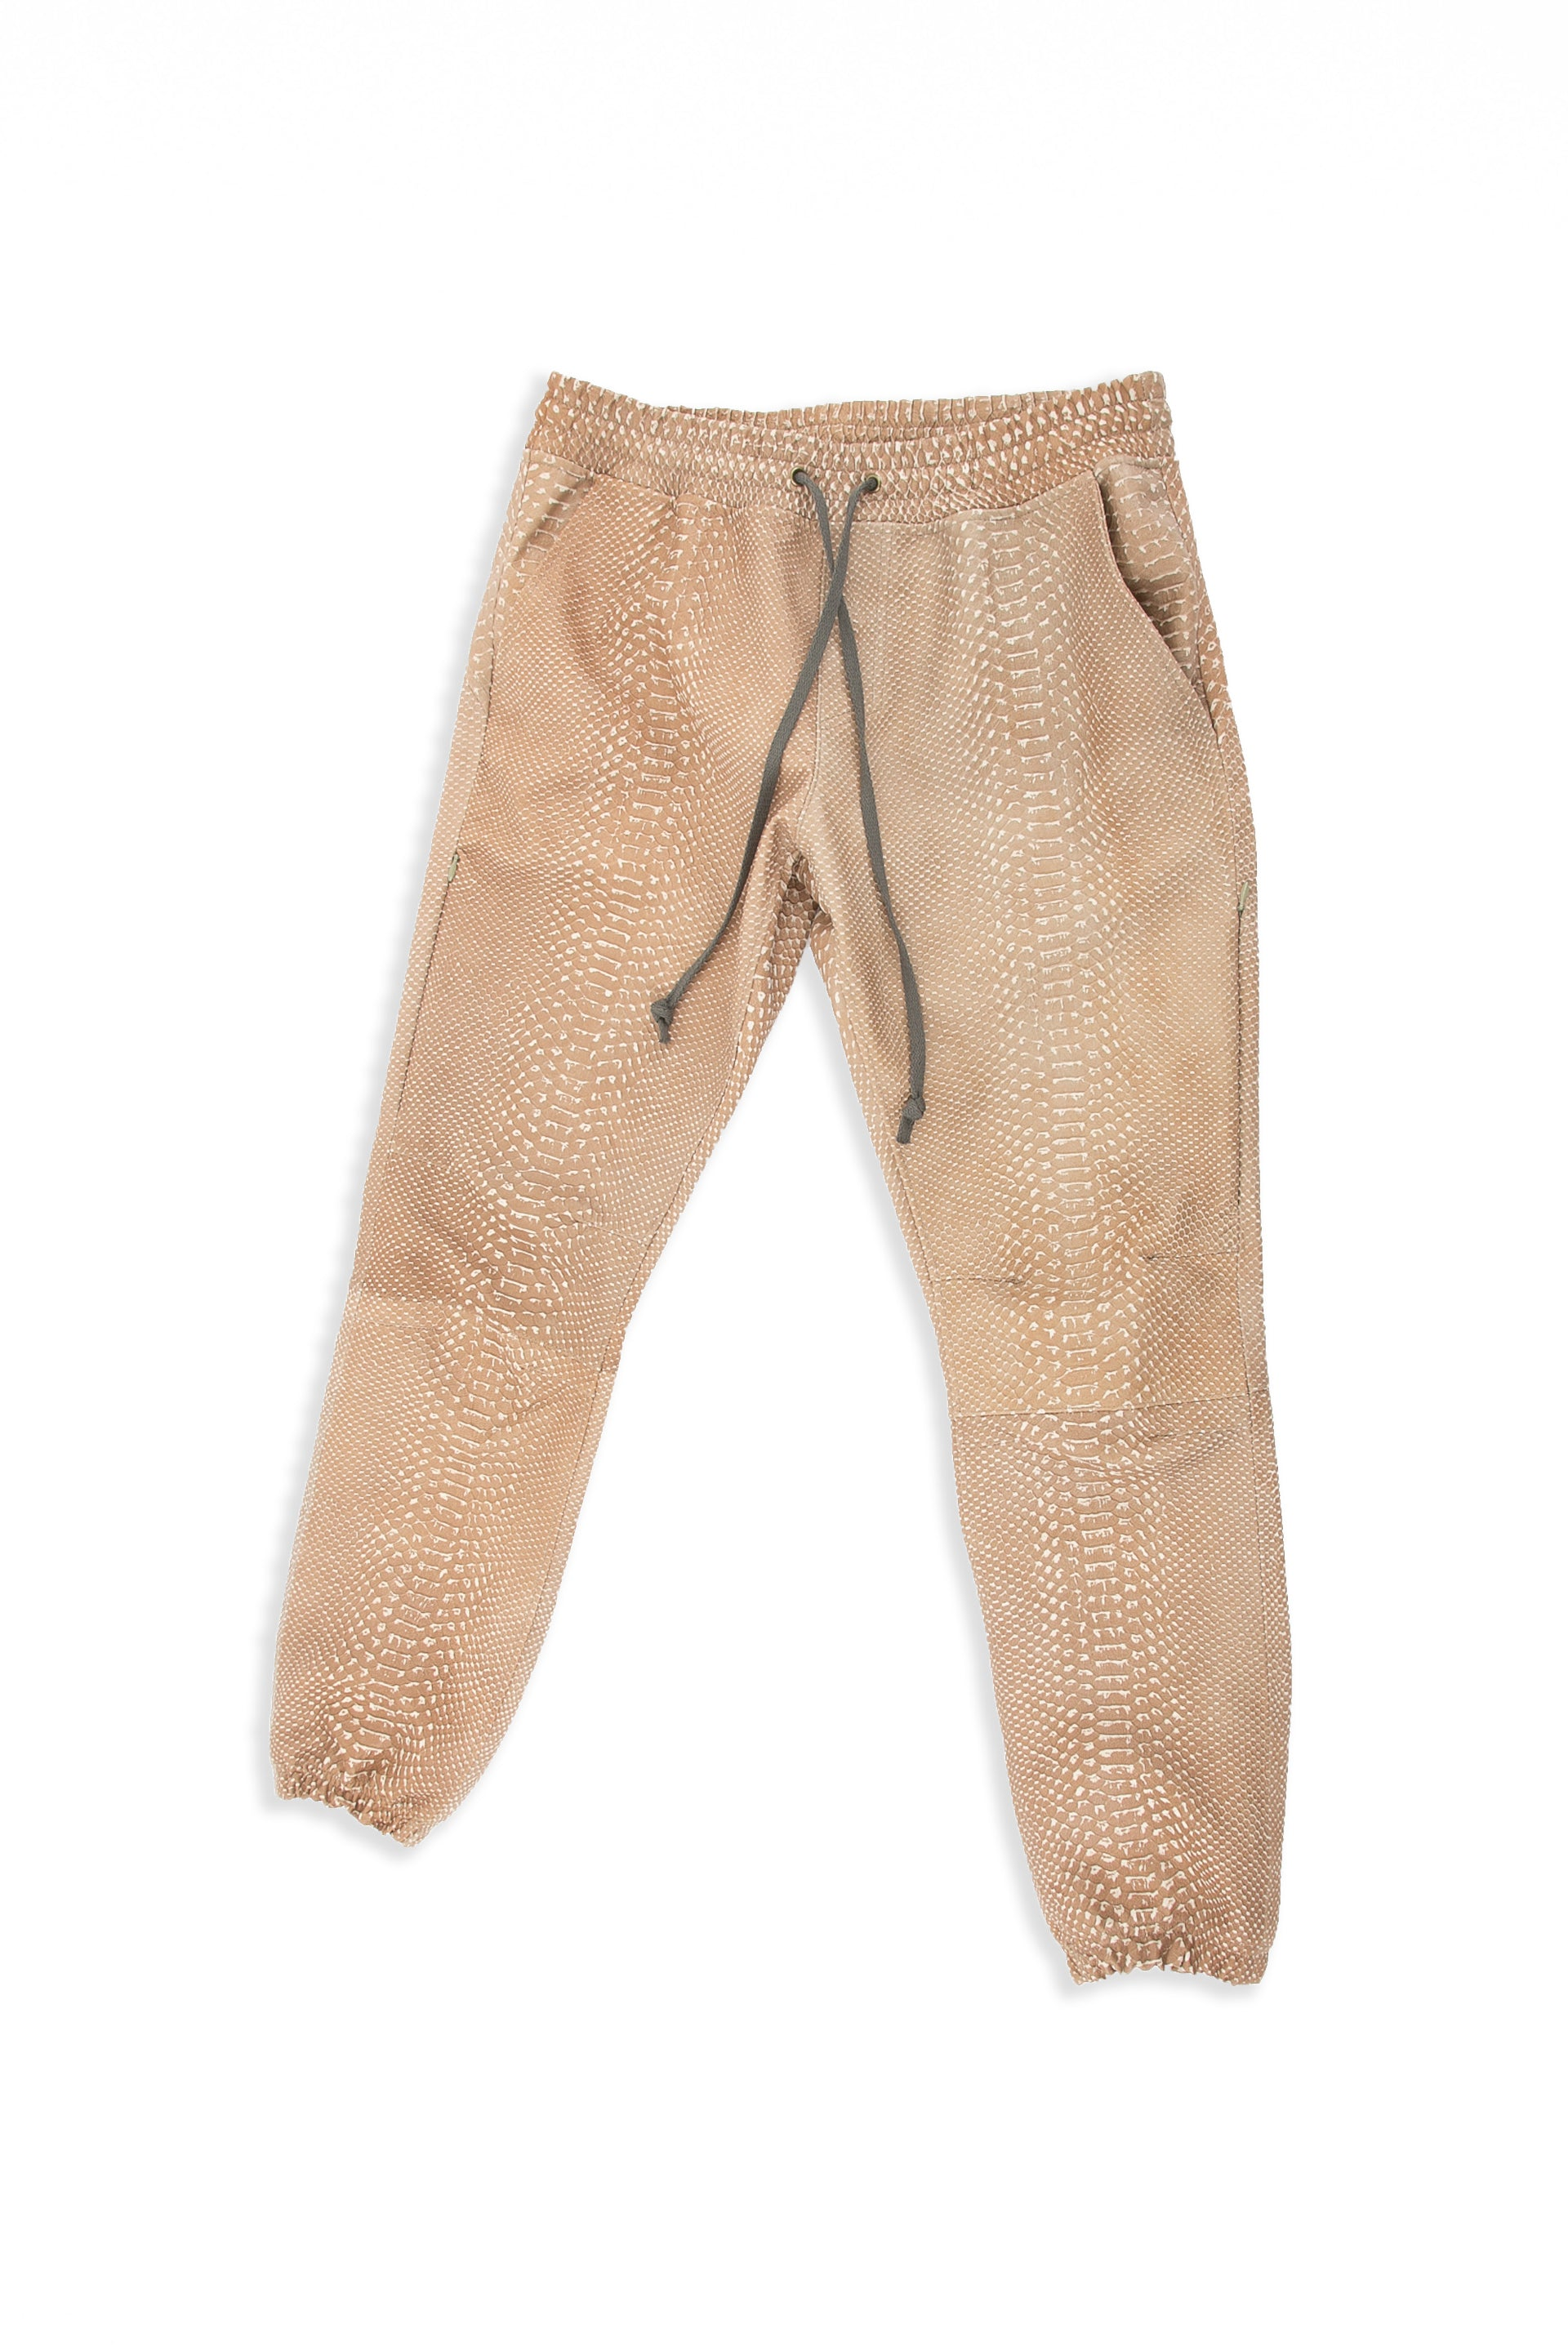 Front of Snakeskin Jogger in Tan